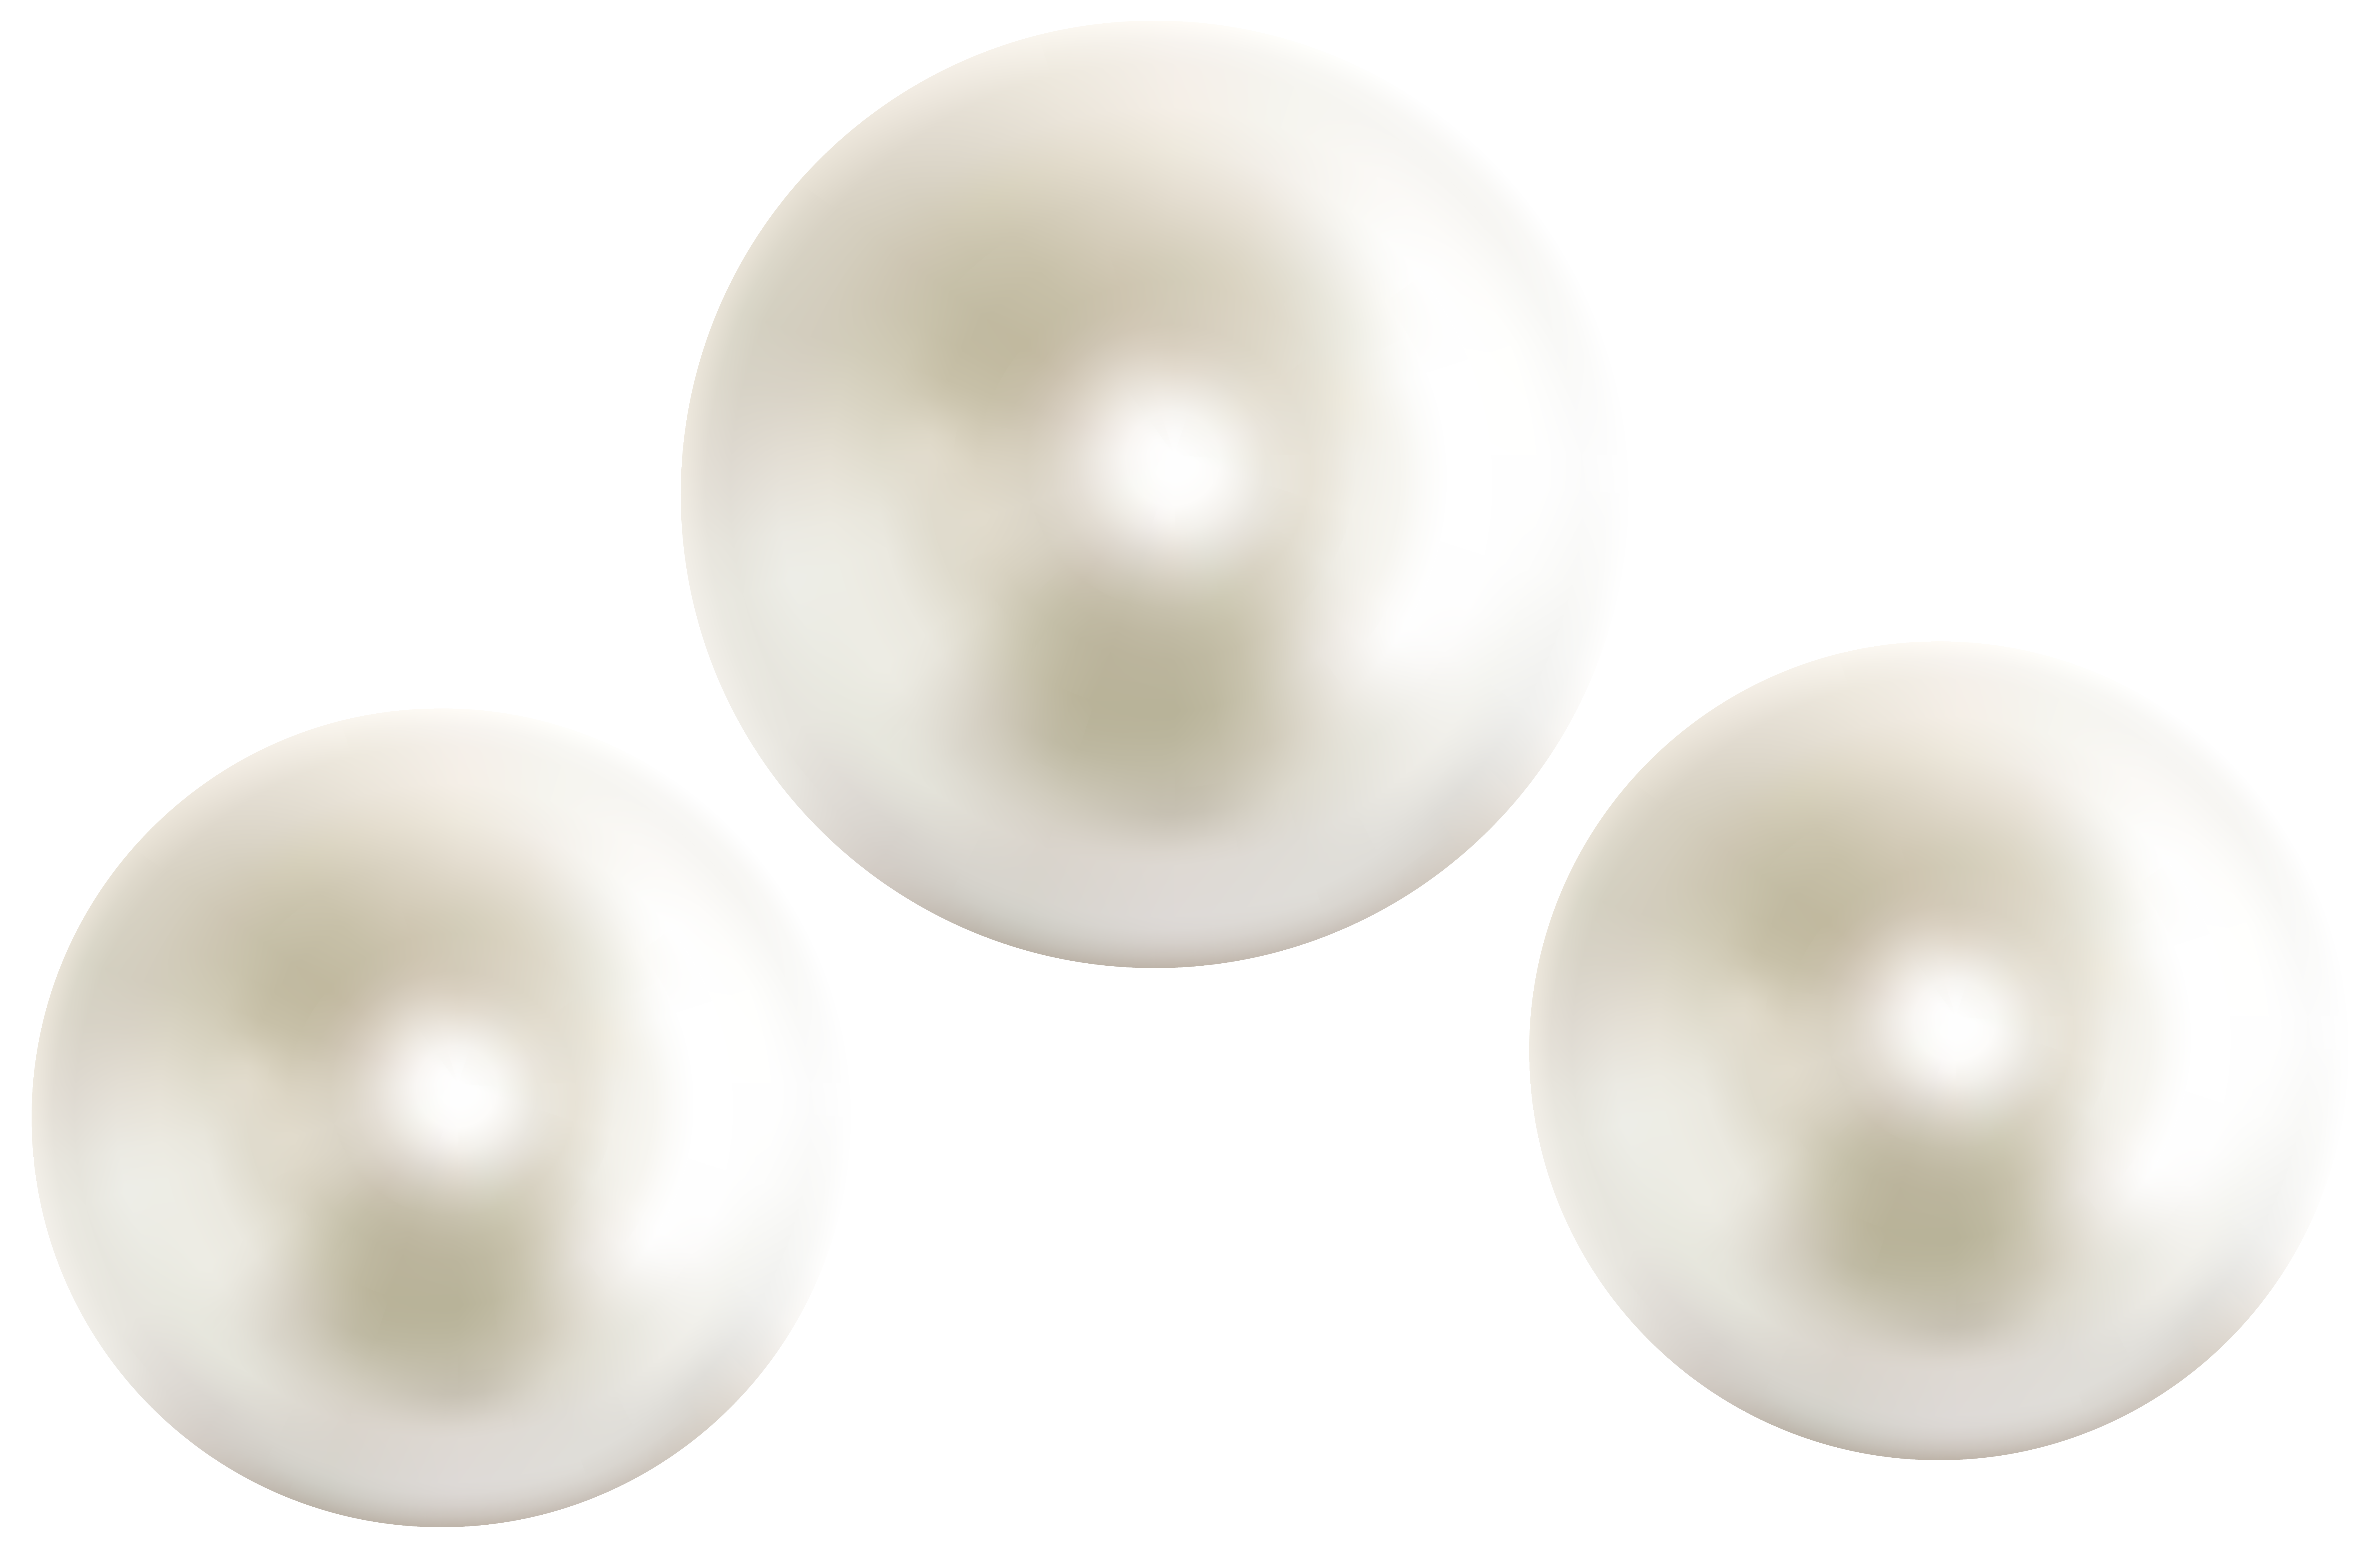 transparent pearls oyster png